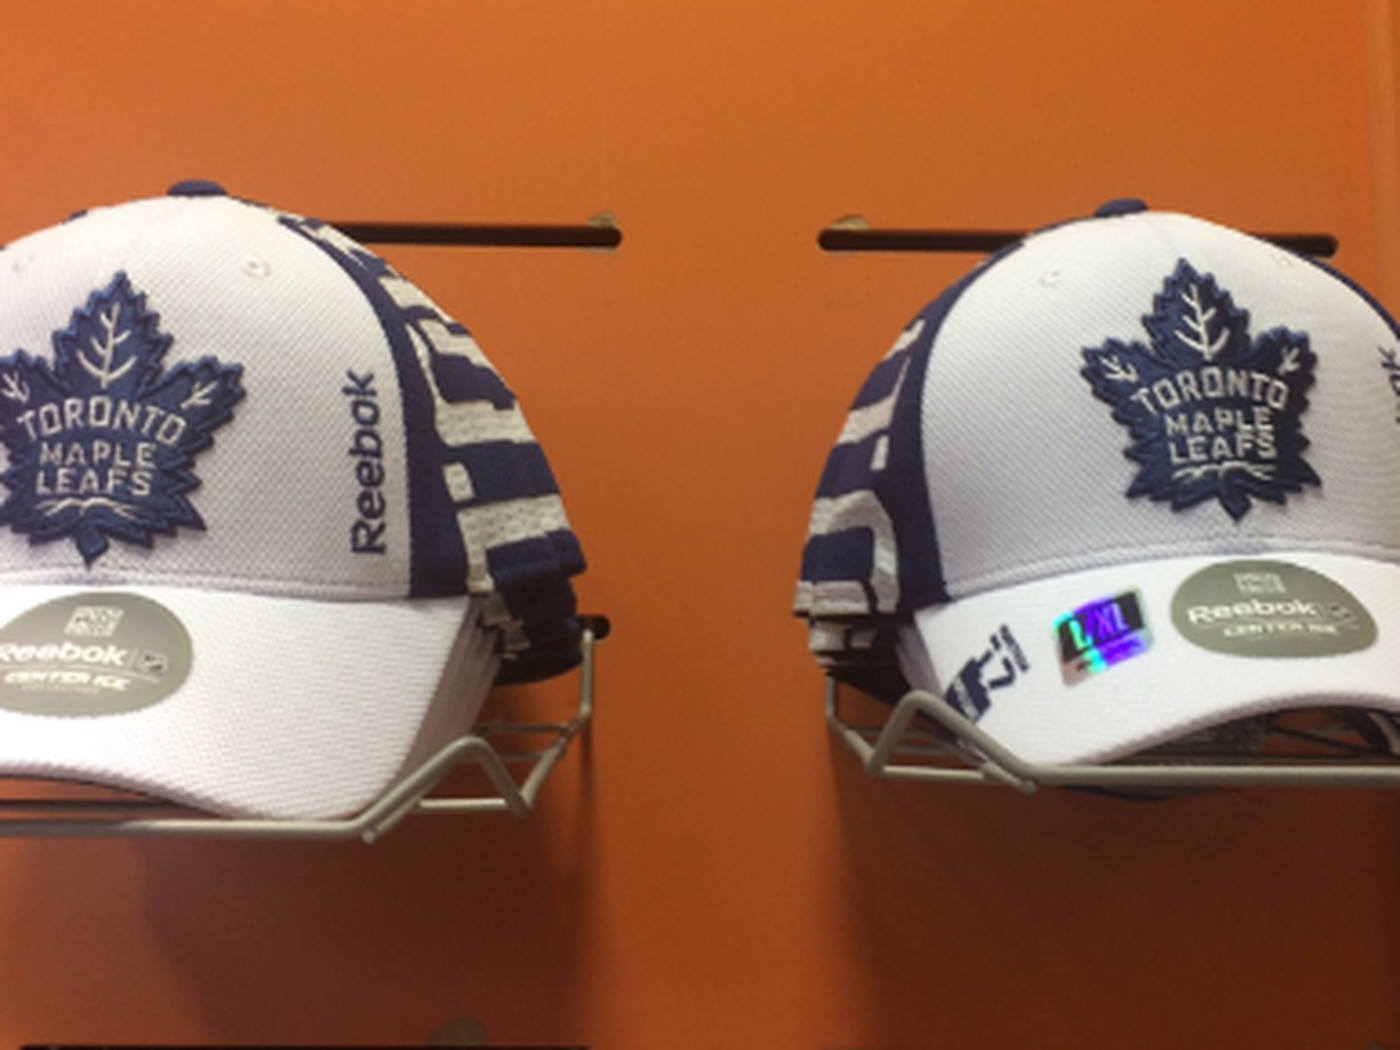 New Toronto Maple Leafs draft hats revealed  - Pension Plan Puppets 7139b0c554bc